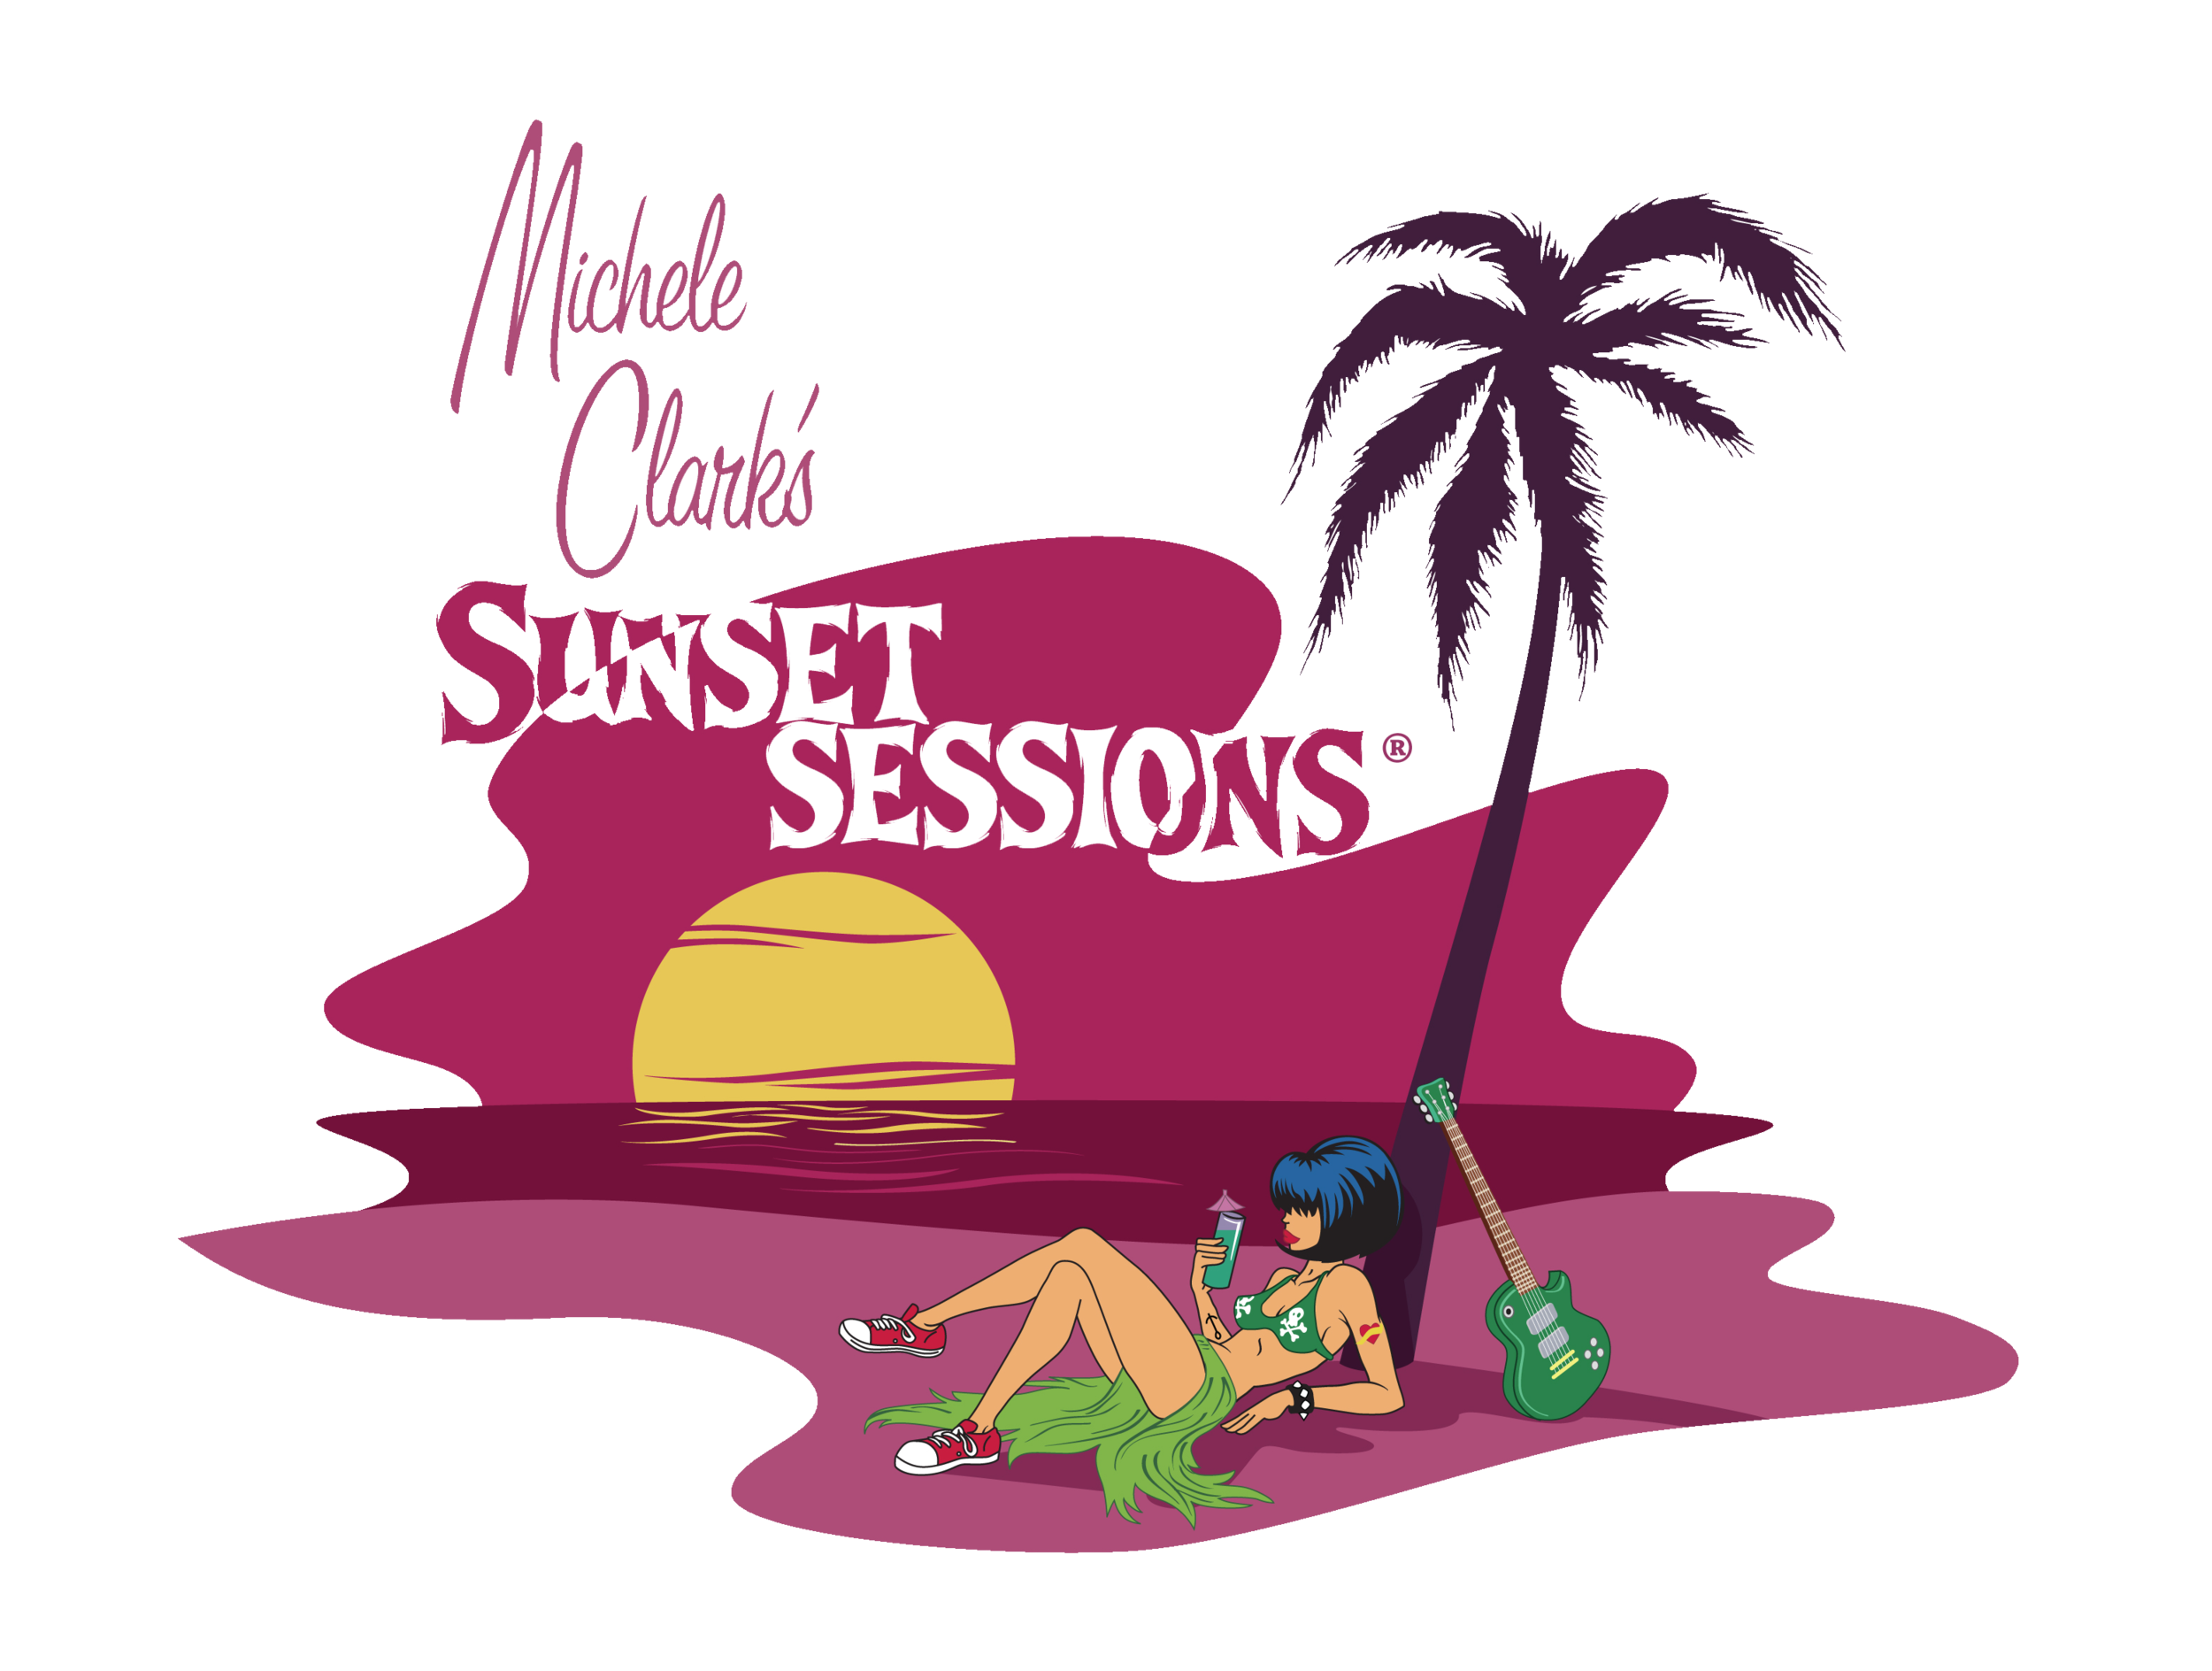 MC_sunsetsessionlogo.png